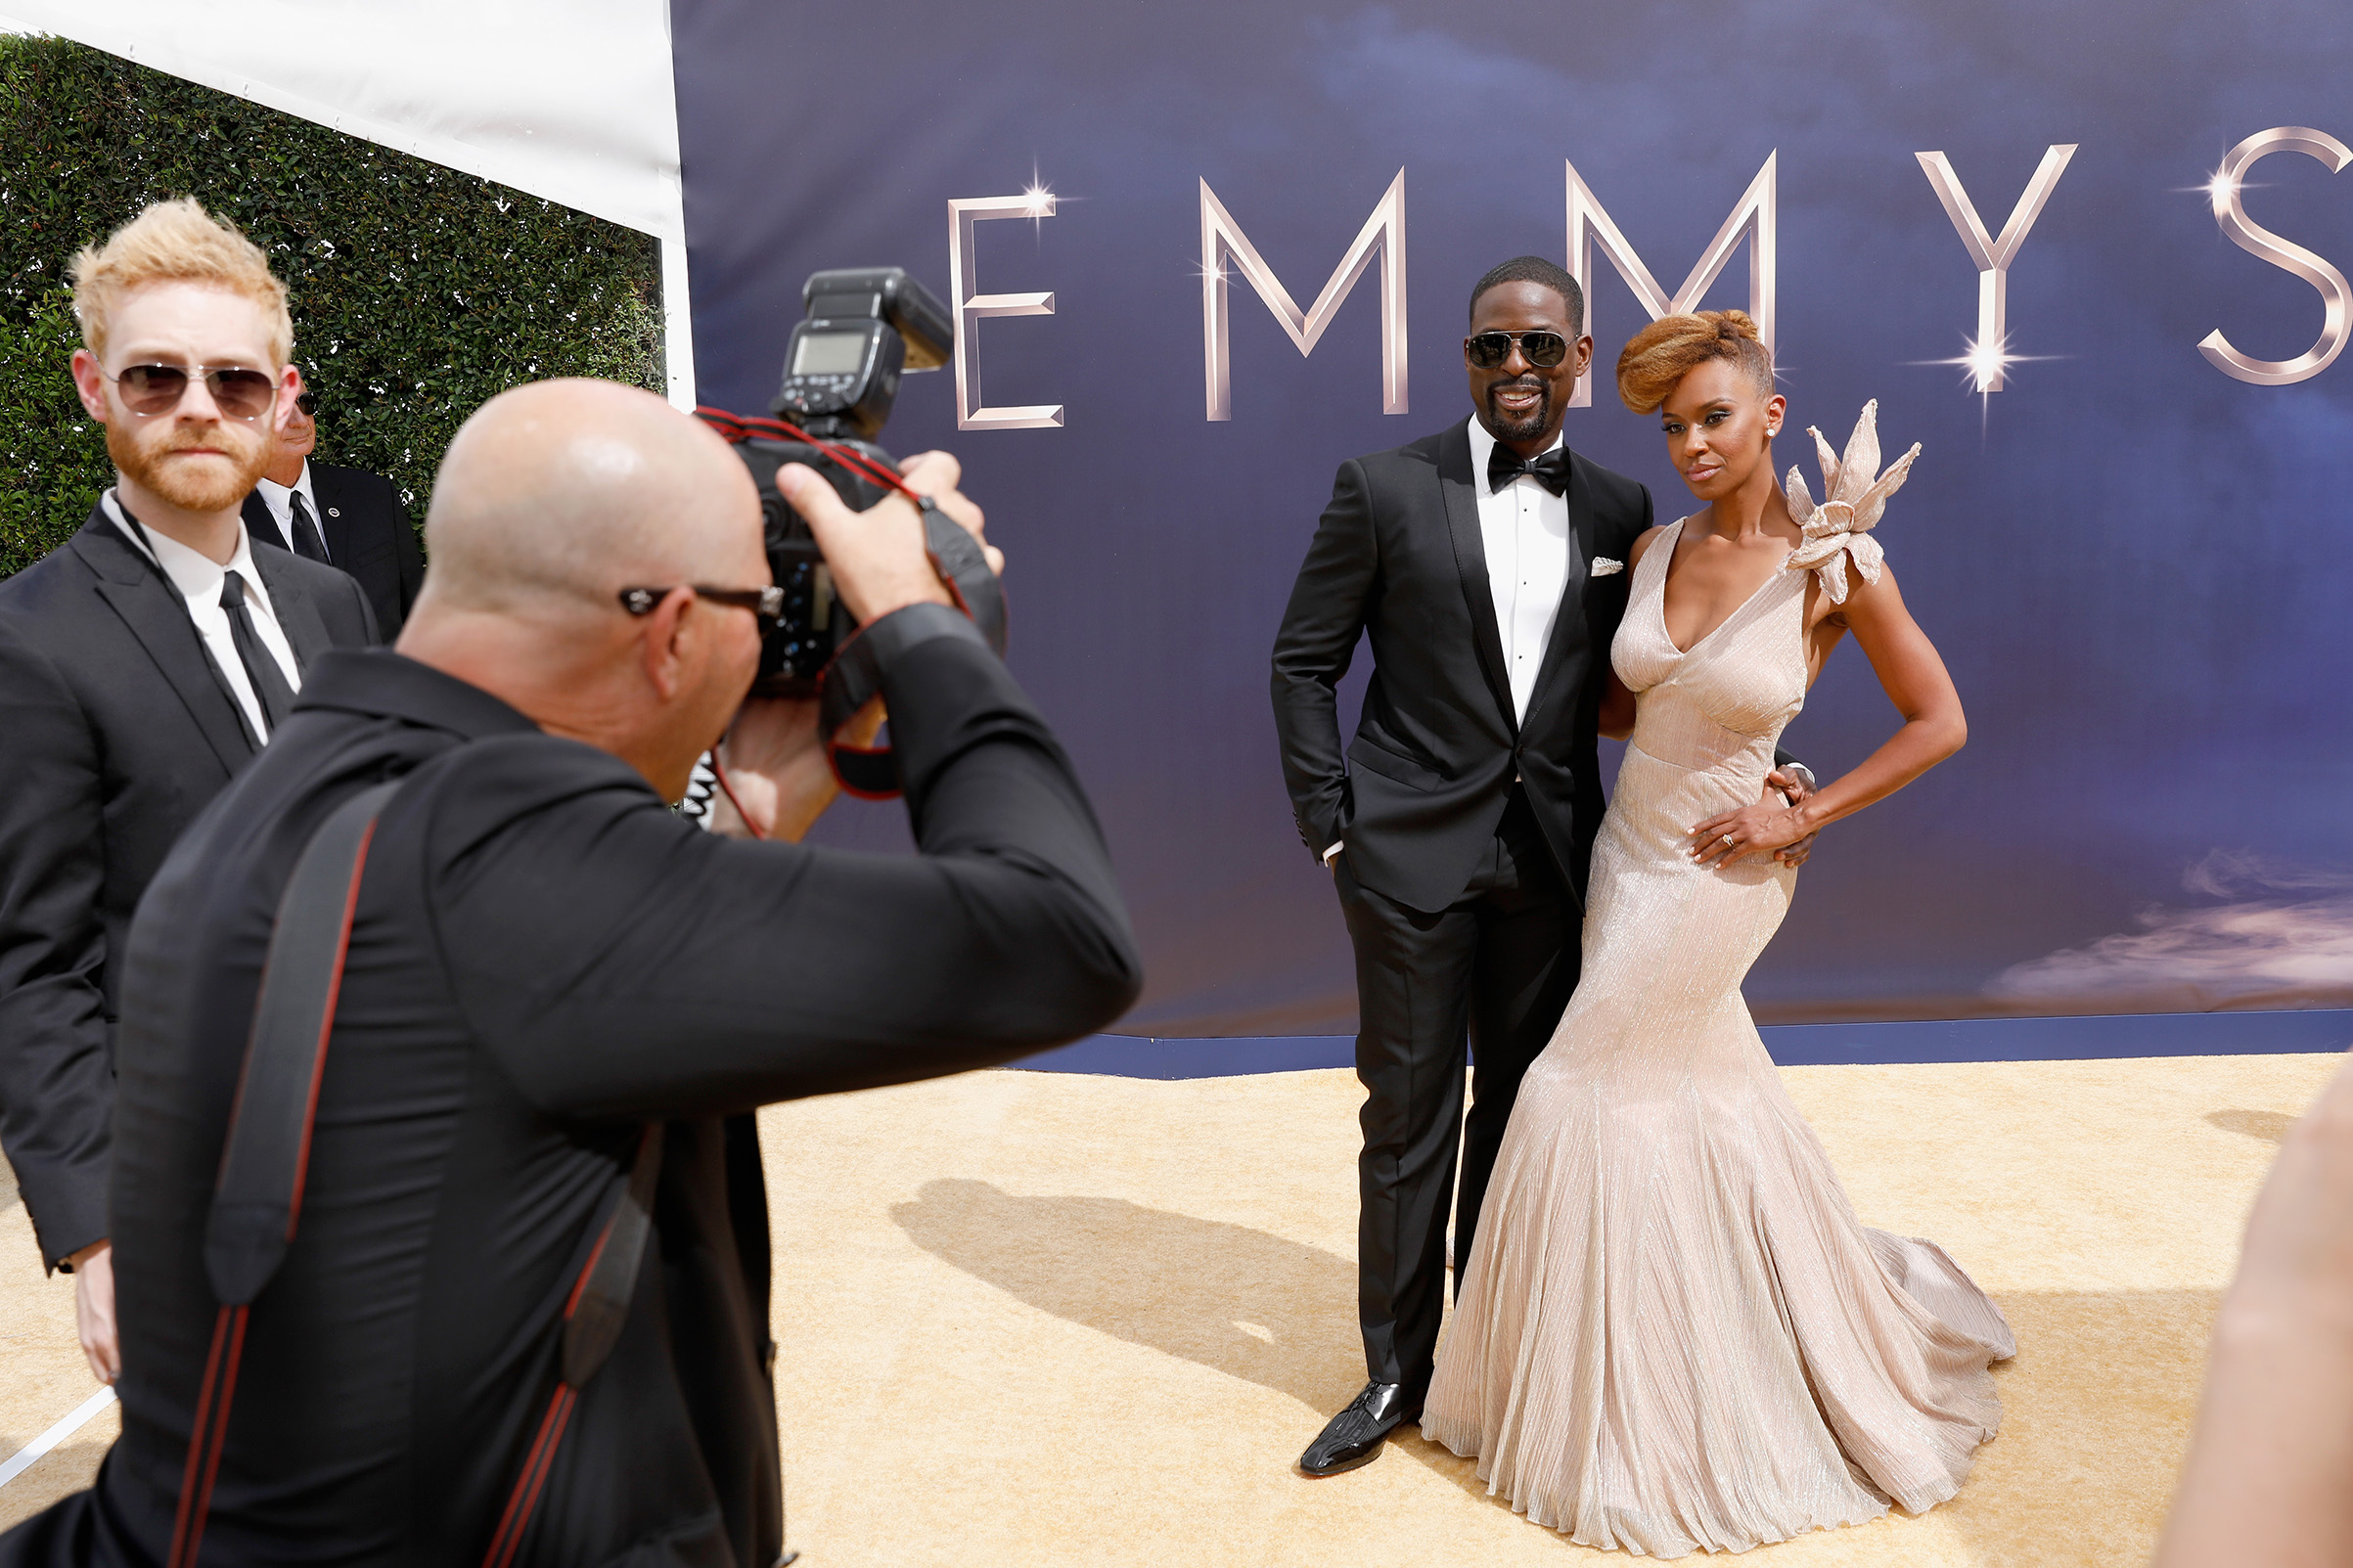 Actors Sterling K. Brown and Ryan Michelle Bathe arrives at the 70th Annual Primetime Emmy Awards on Sept. 17.